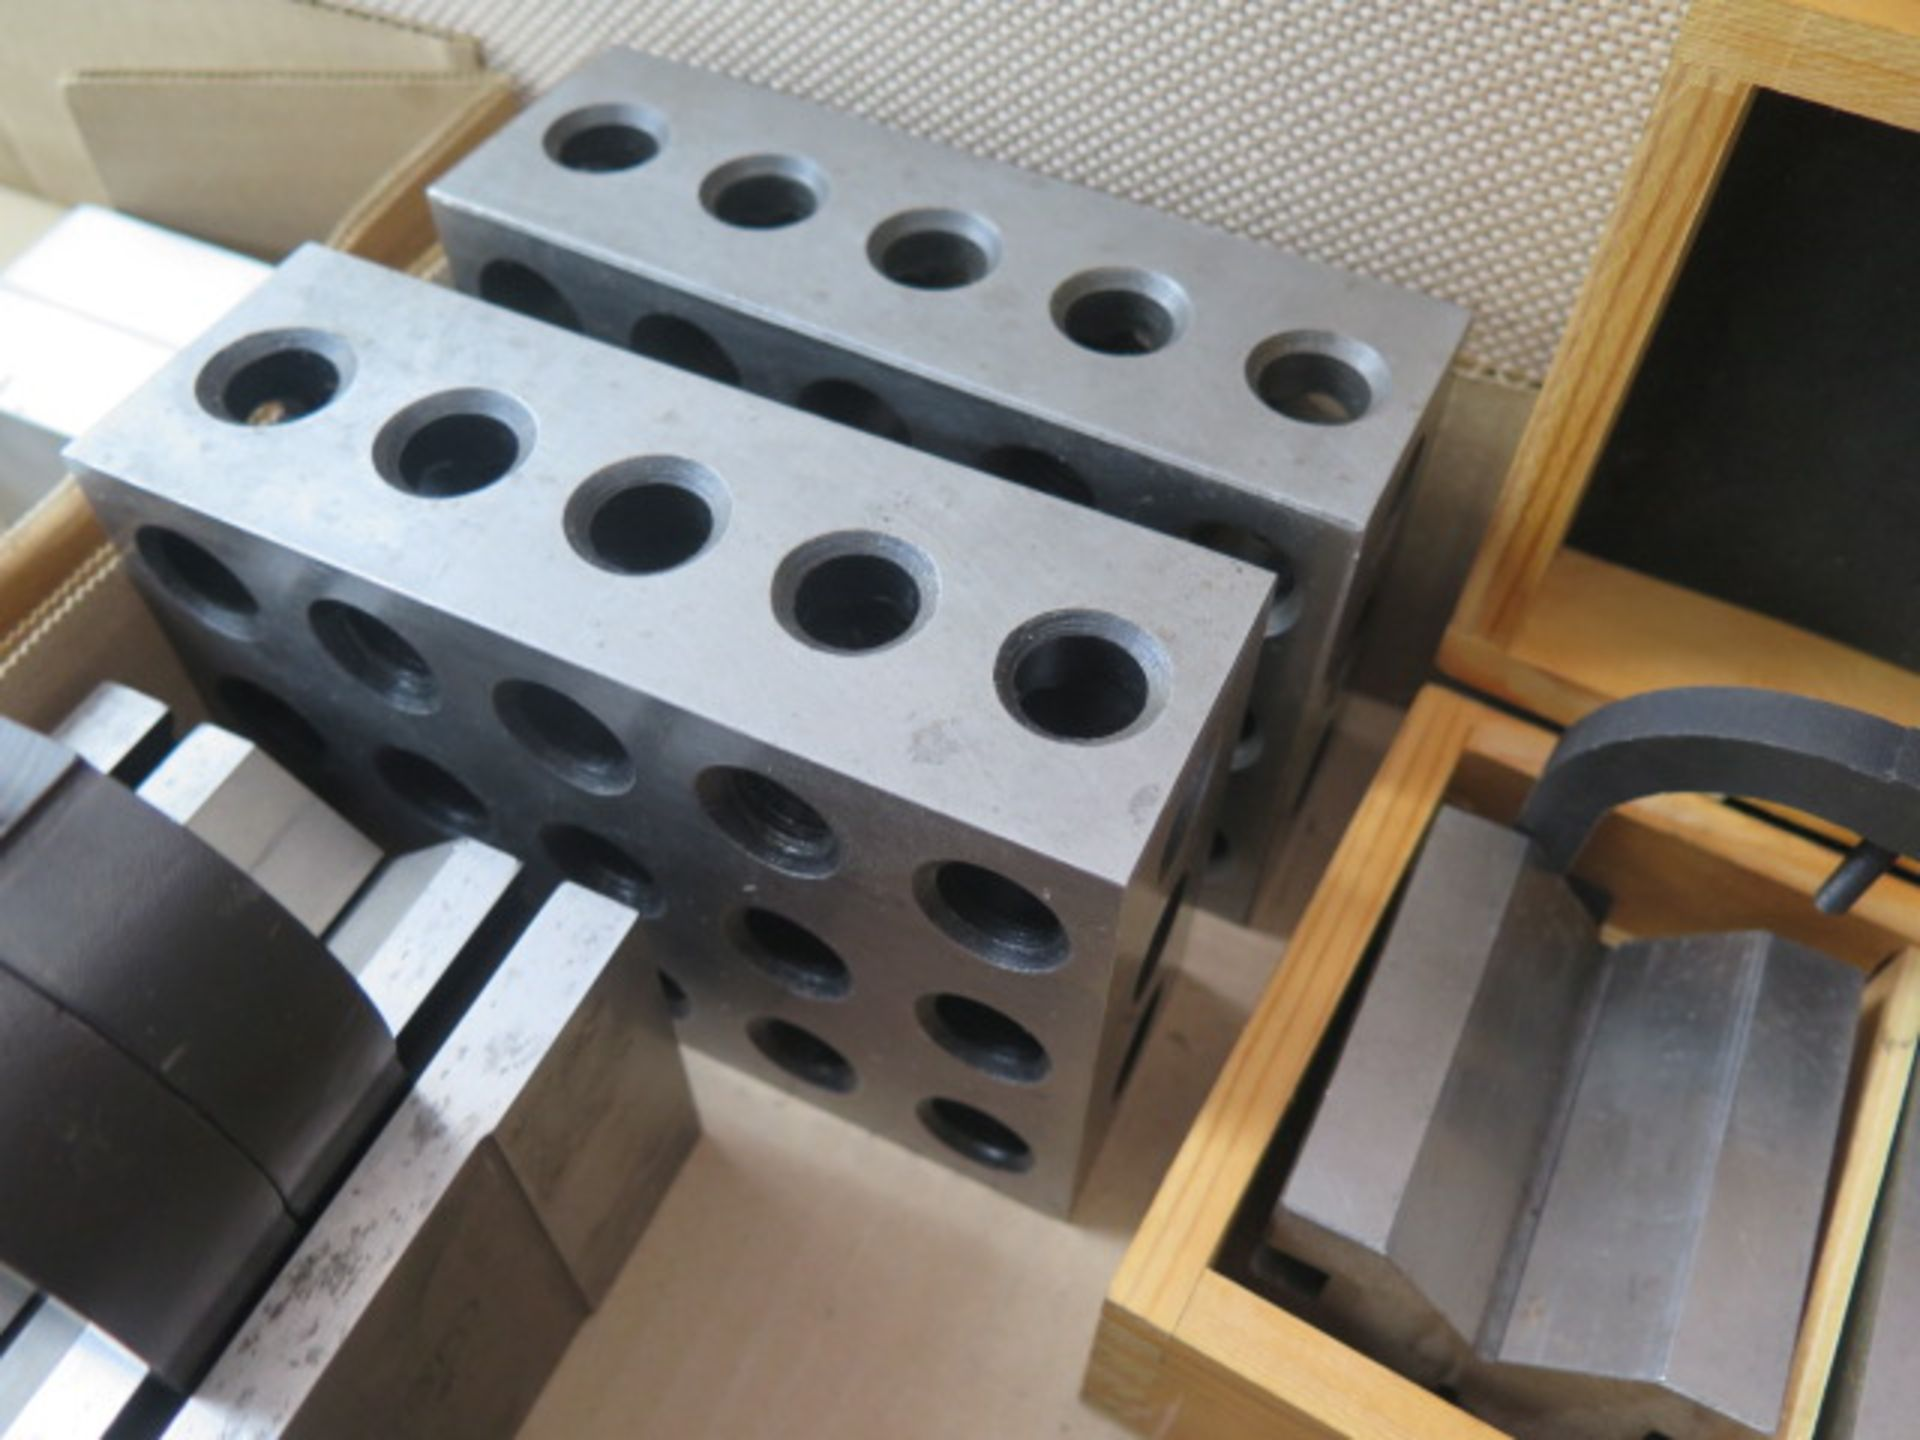 2-4-6 Blocks and V-Blocks (SOLD AS-IS - NO WARRANTY) - Image 3 of 7